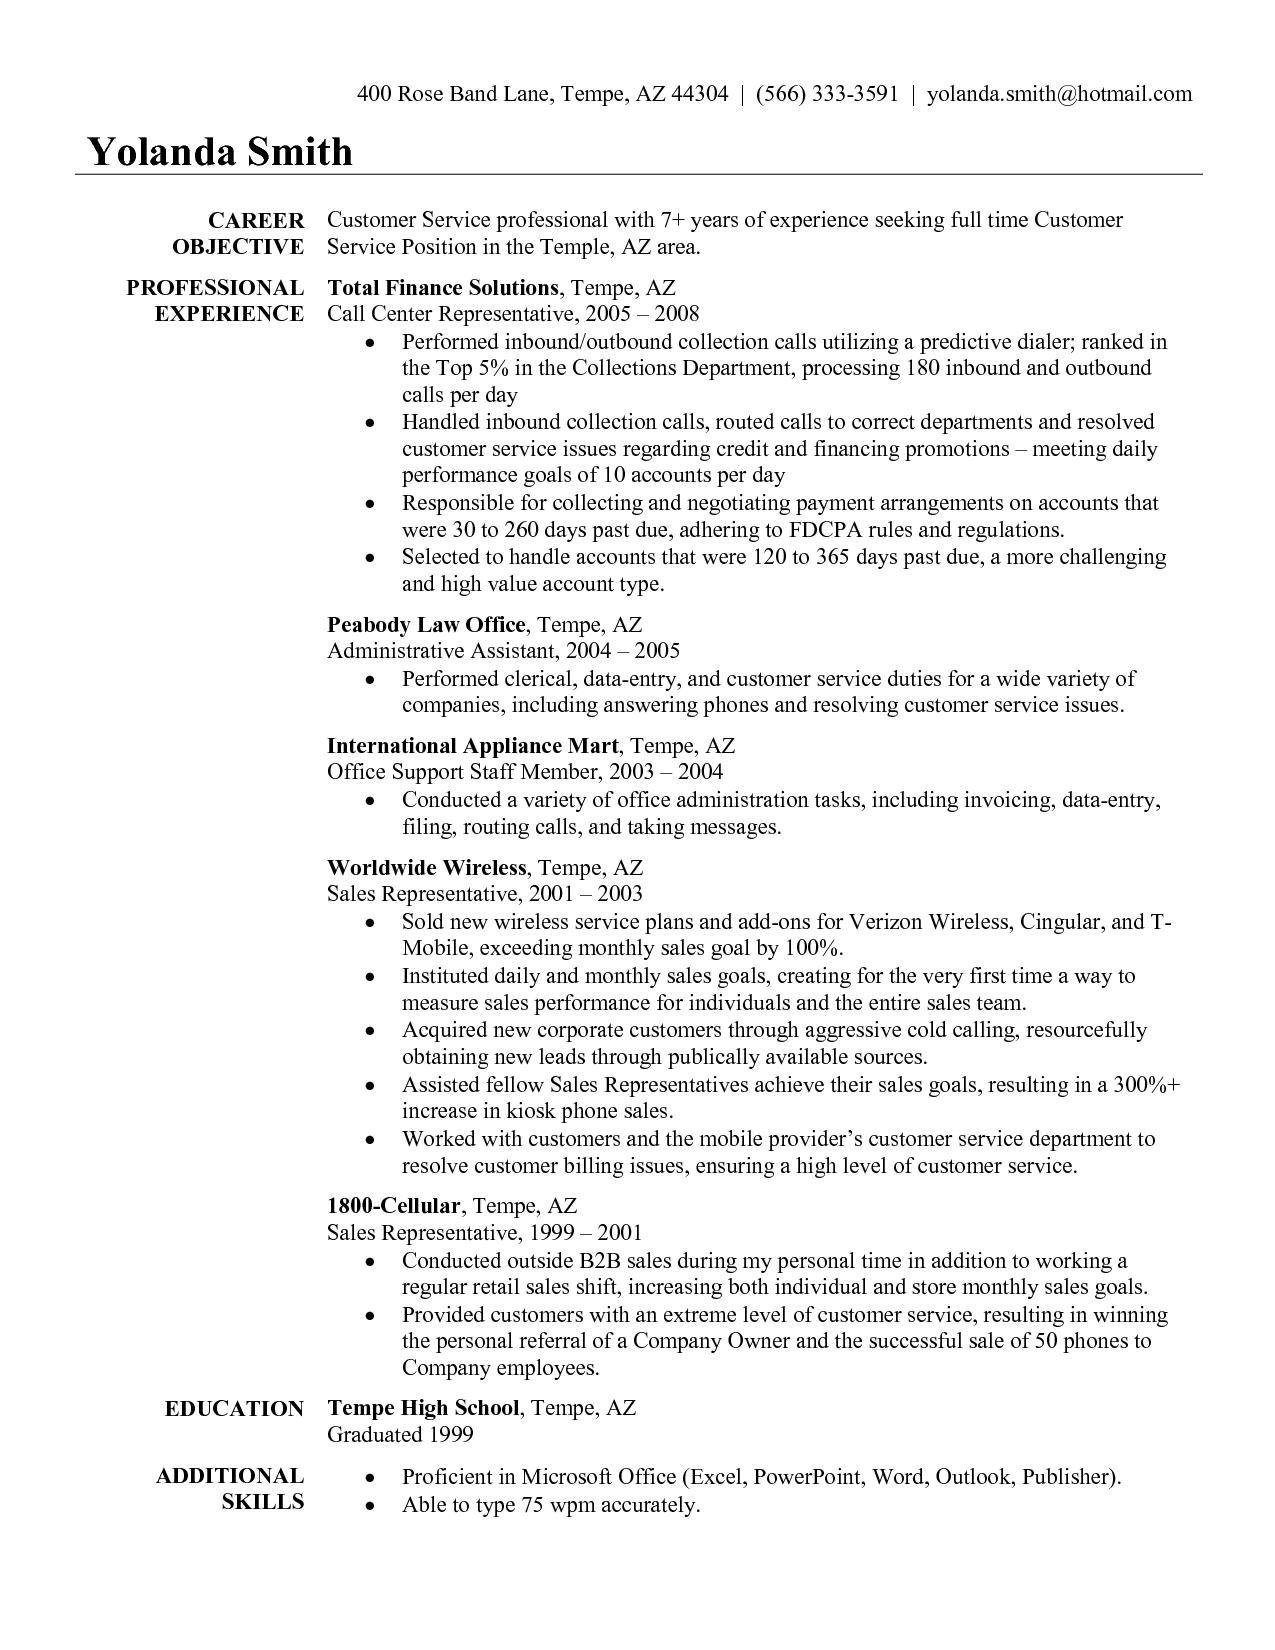 traffic customer resume examples  customer service resume examples  customer service resume